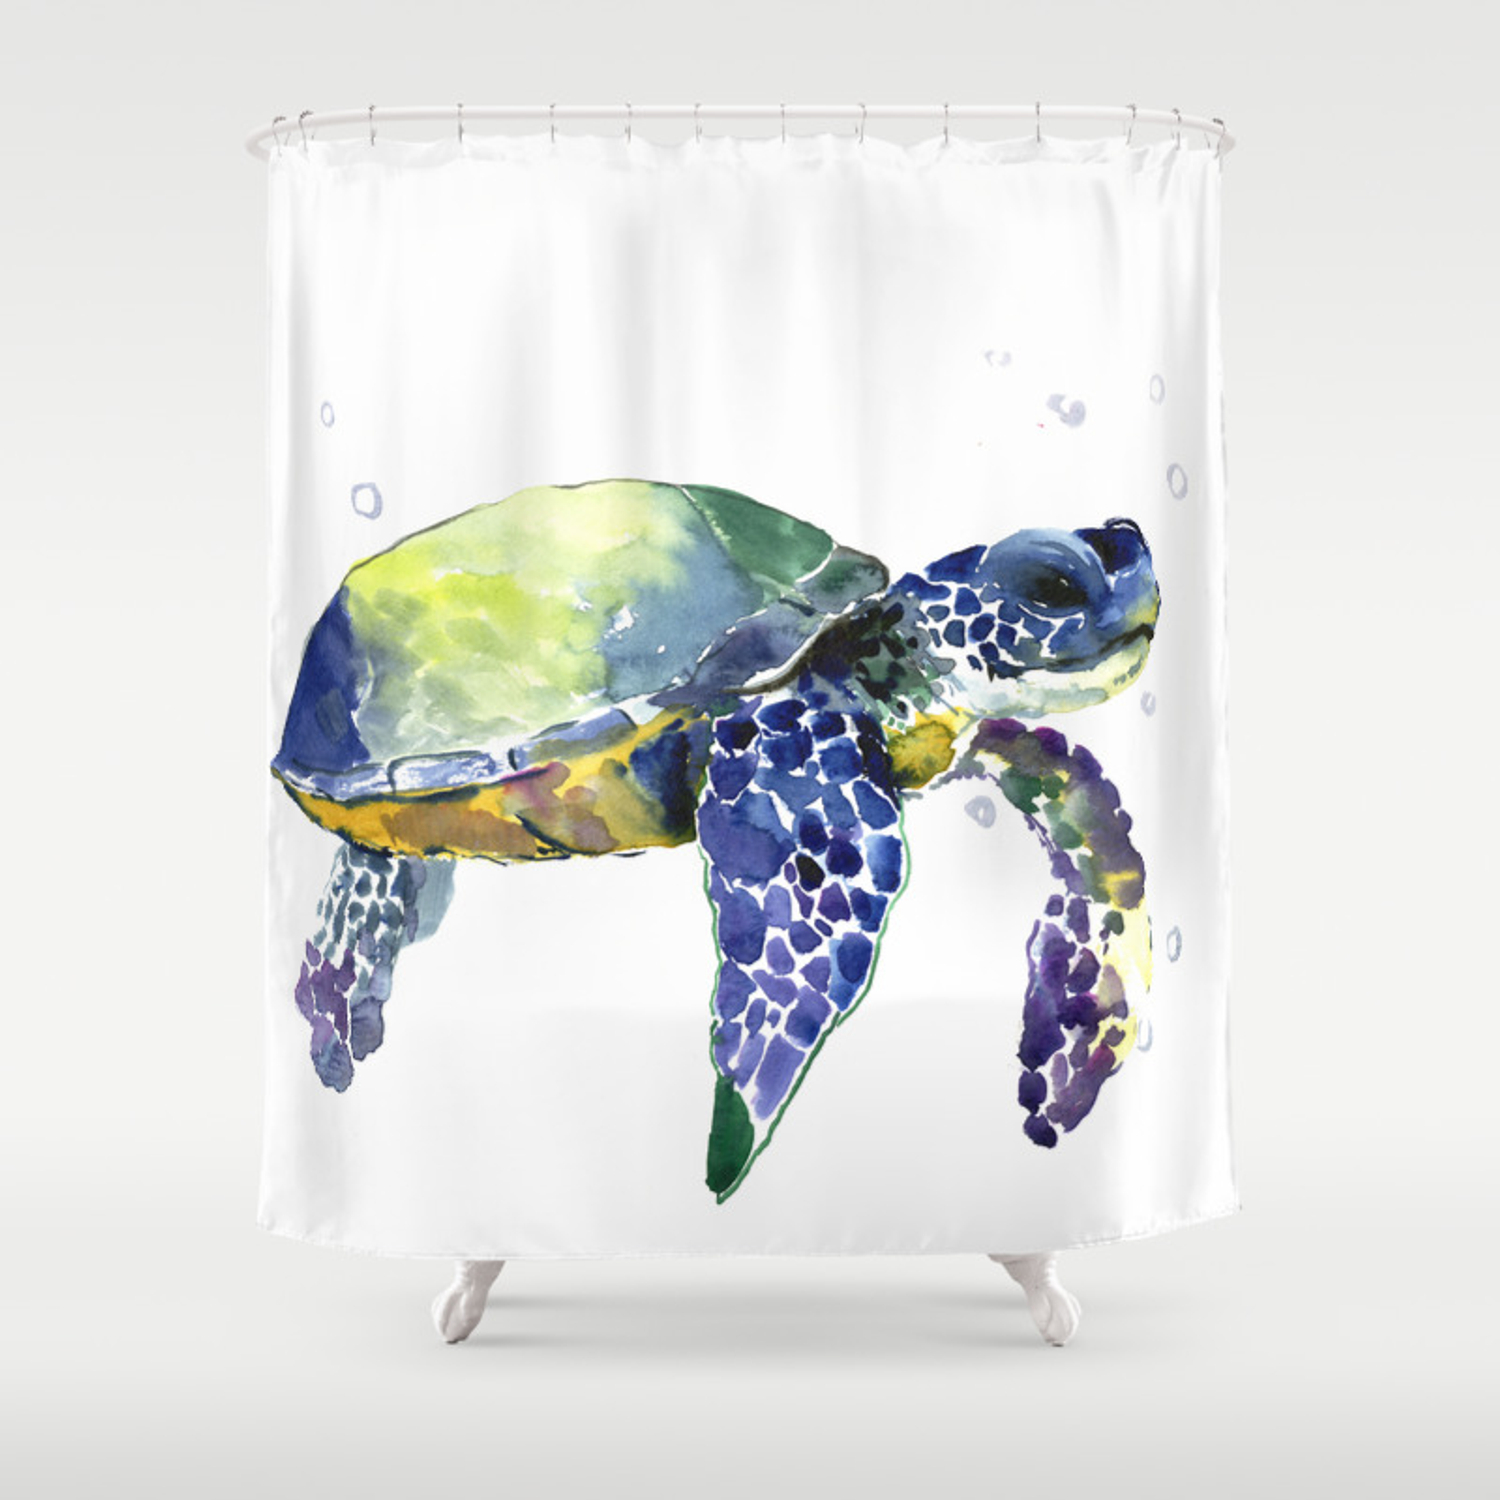 Sea Turtle Beach Art Nautical Aquatic Underwater Scene Blue Green Turtle Shower Curtain